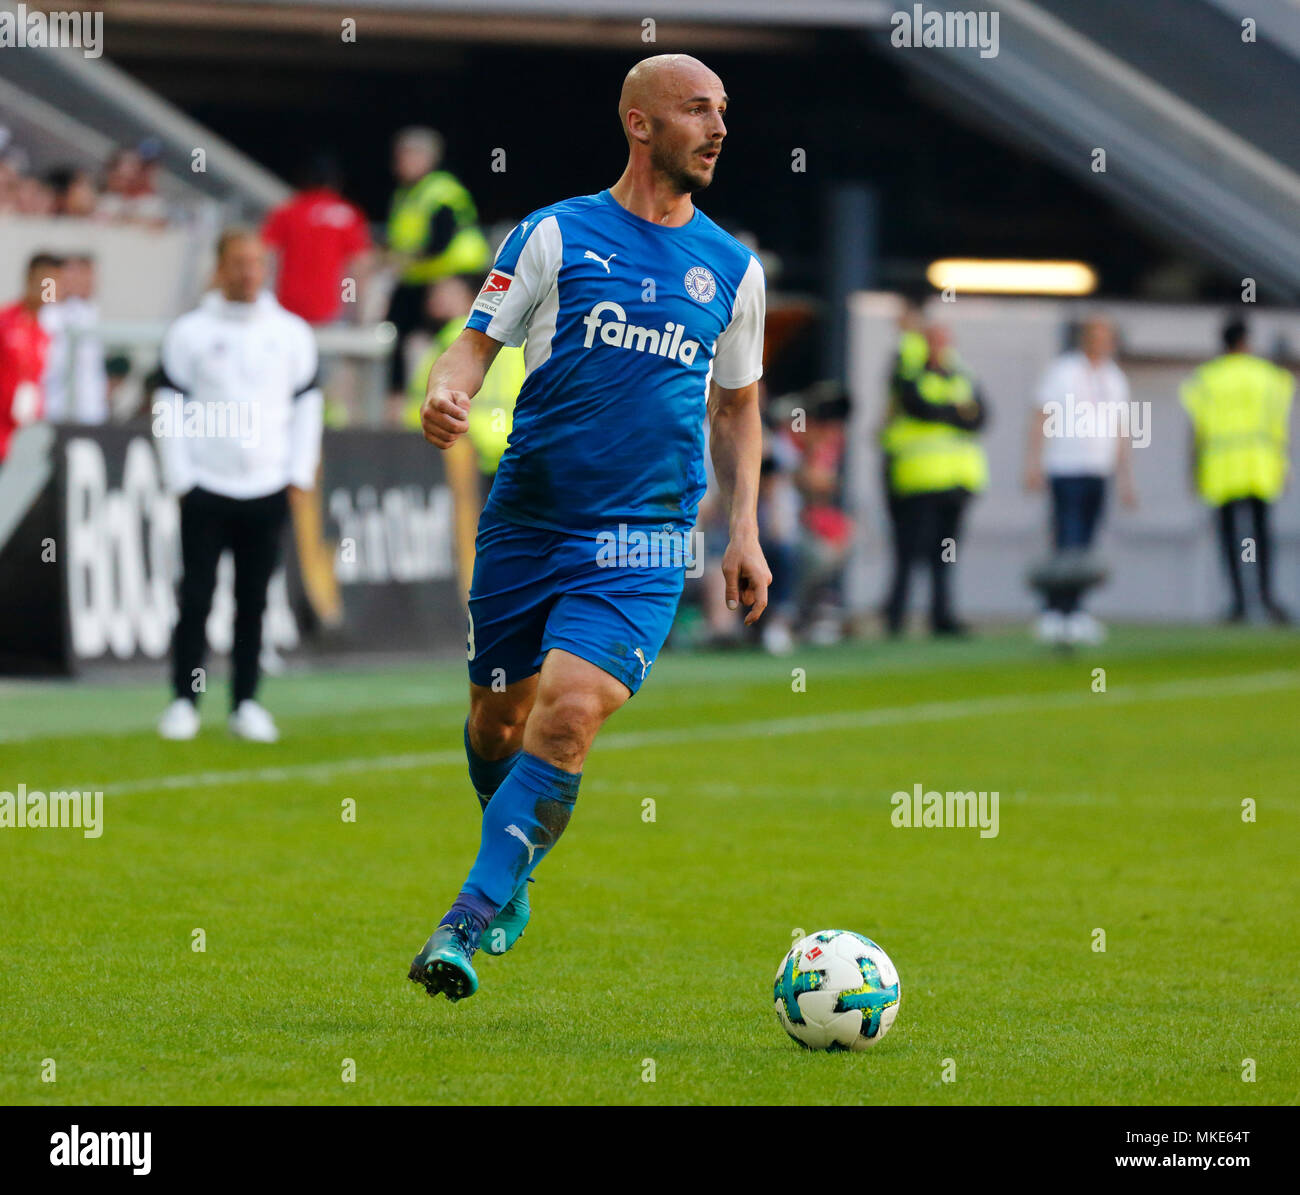 sports,football,2. Bundesliga,2017/2018,Fortuna Duesseldorf vs Holstein Kiel 1:1,Esprit arena Duesseldorf,scene of the match,Patrick Herrmann (Kiel) in ball possession - Stock Image